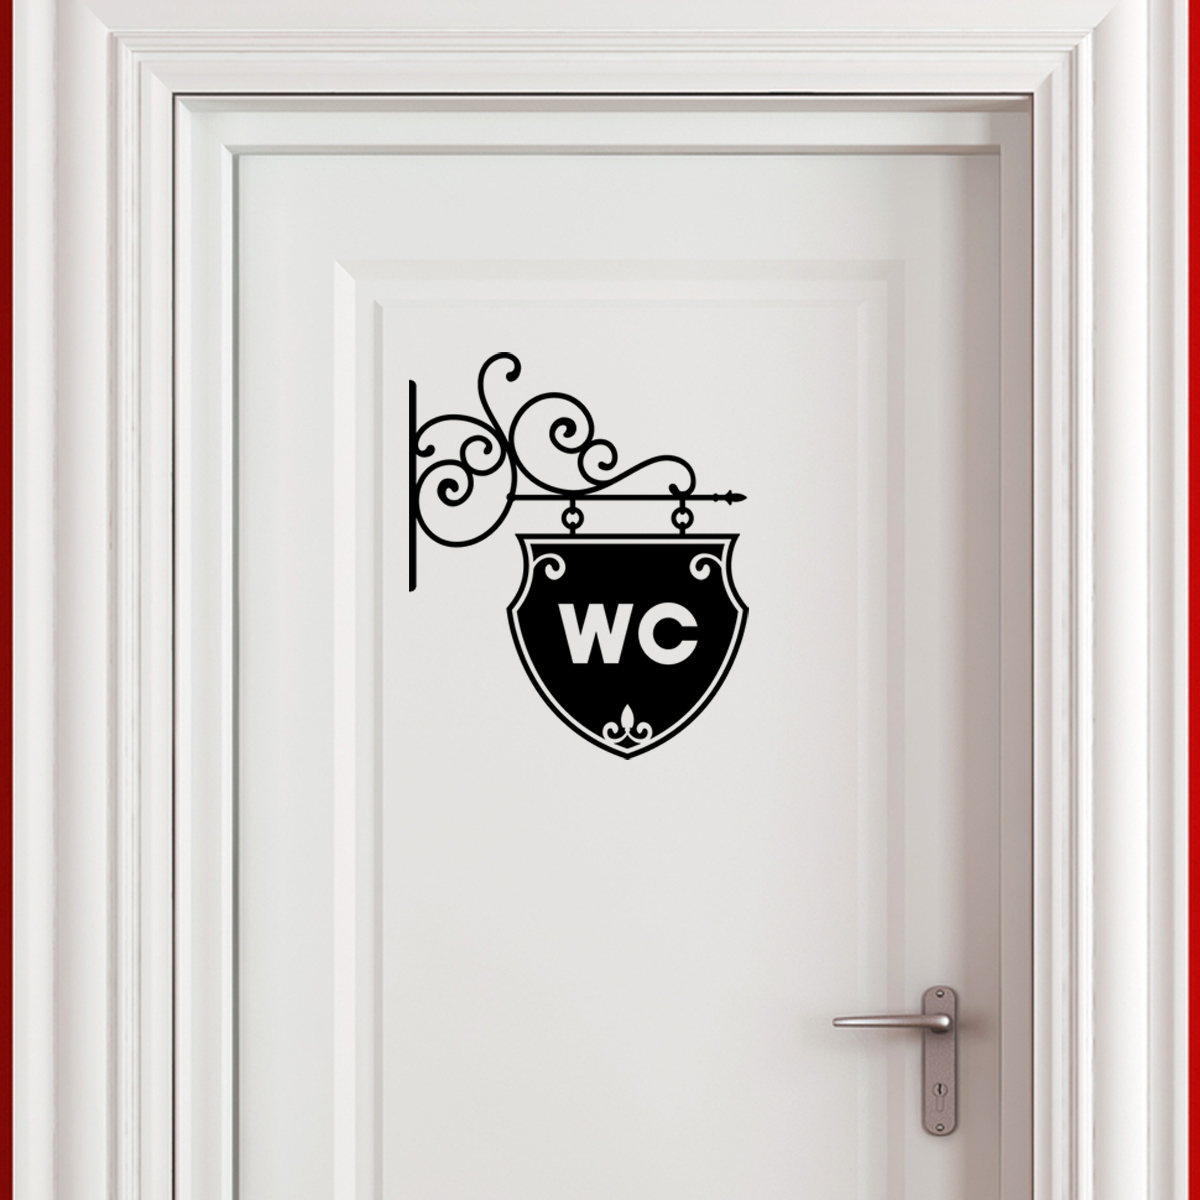 plaque de porte wc design poignee de porte interieur design deco maison moderne clenche with. Black Bedroom Furniture Sets. Home Design Ideas